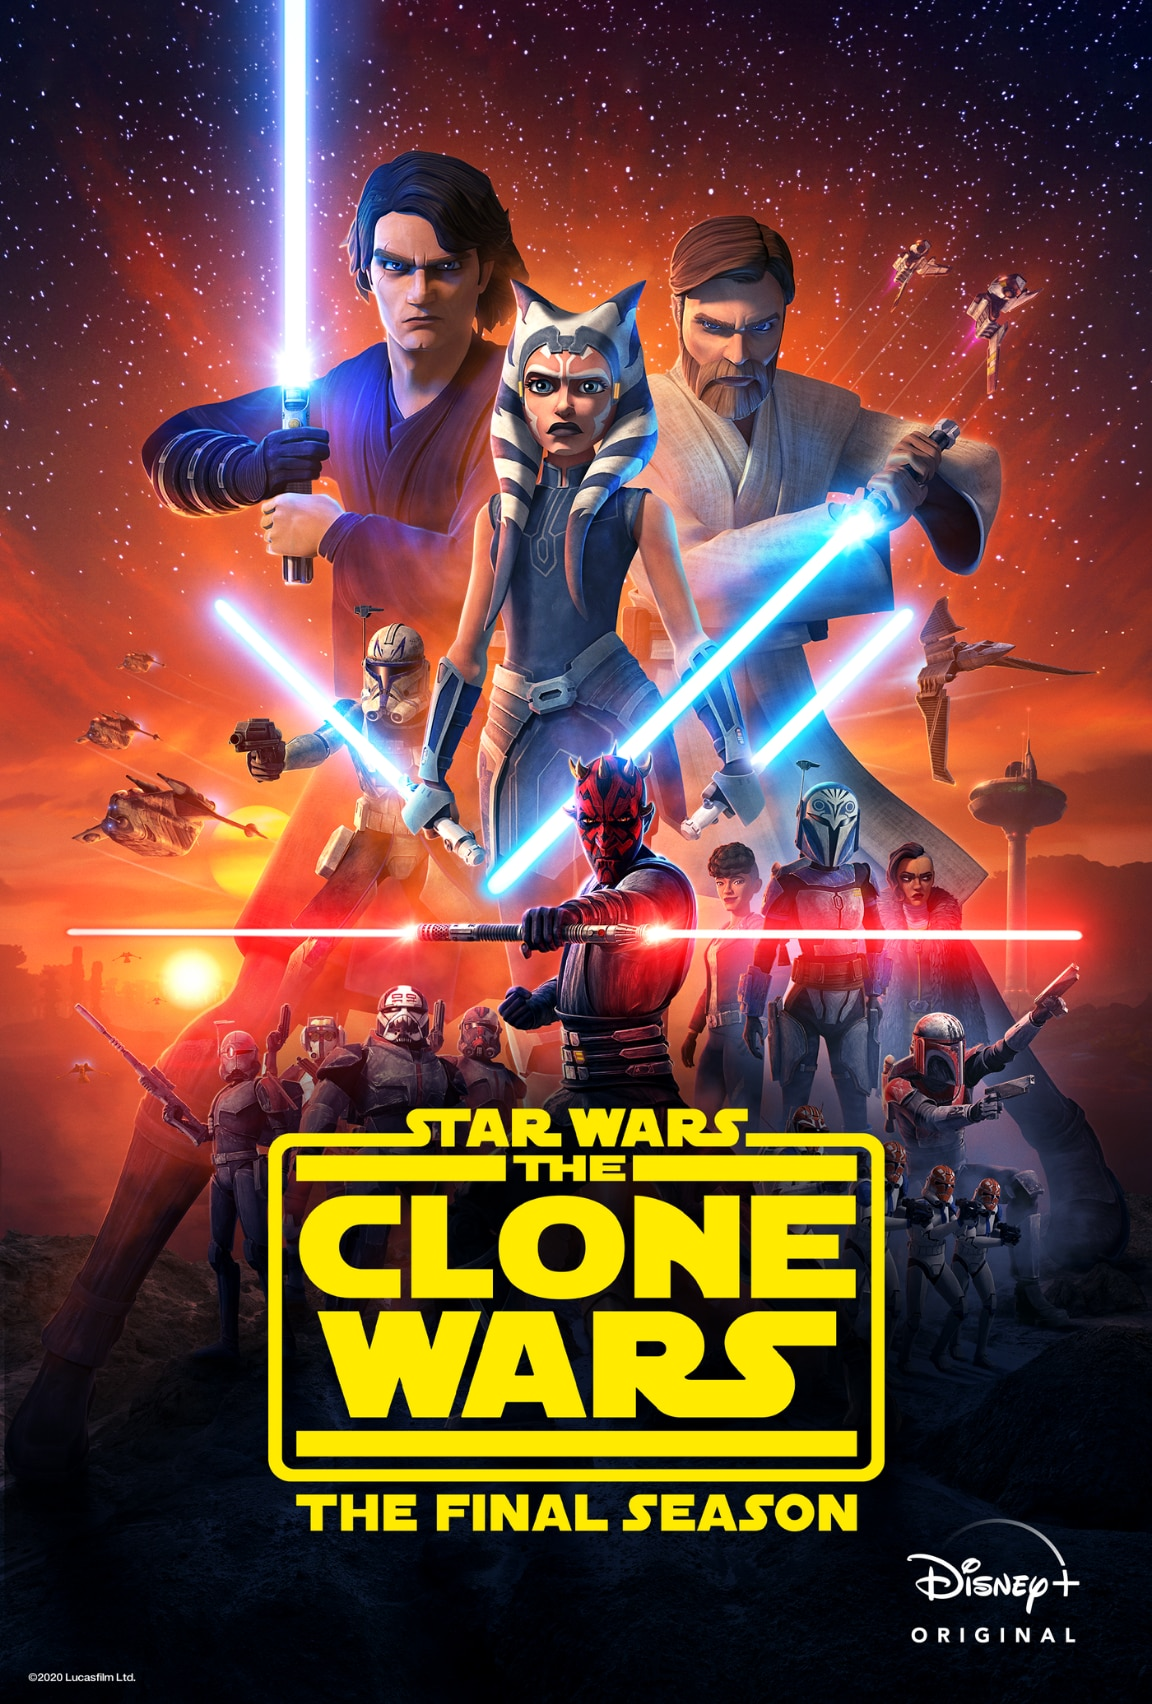 Star Wars The Clone Wars on Disney+